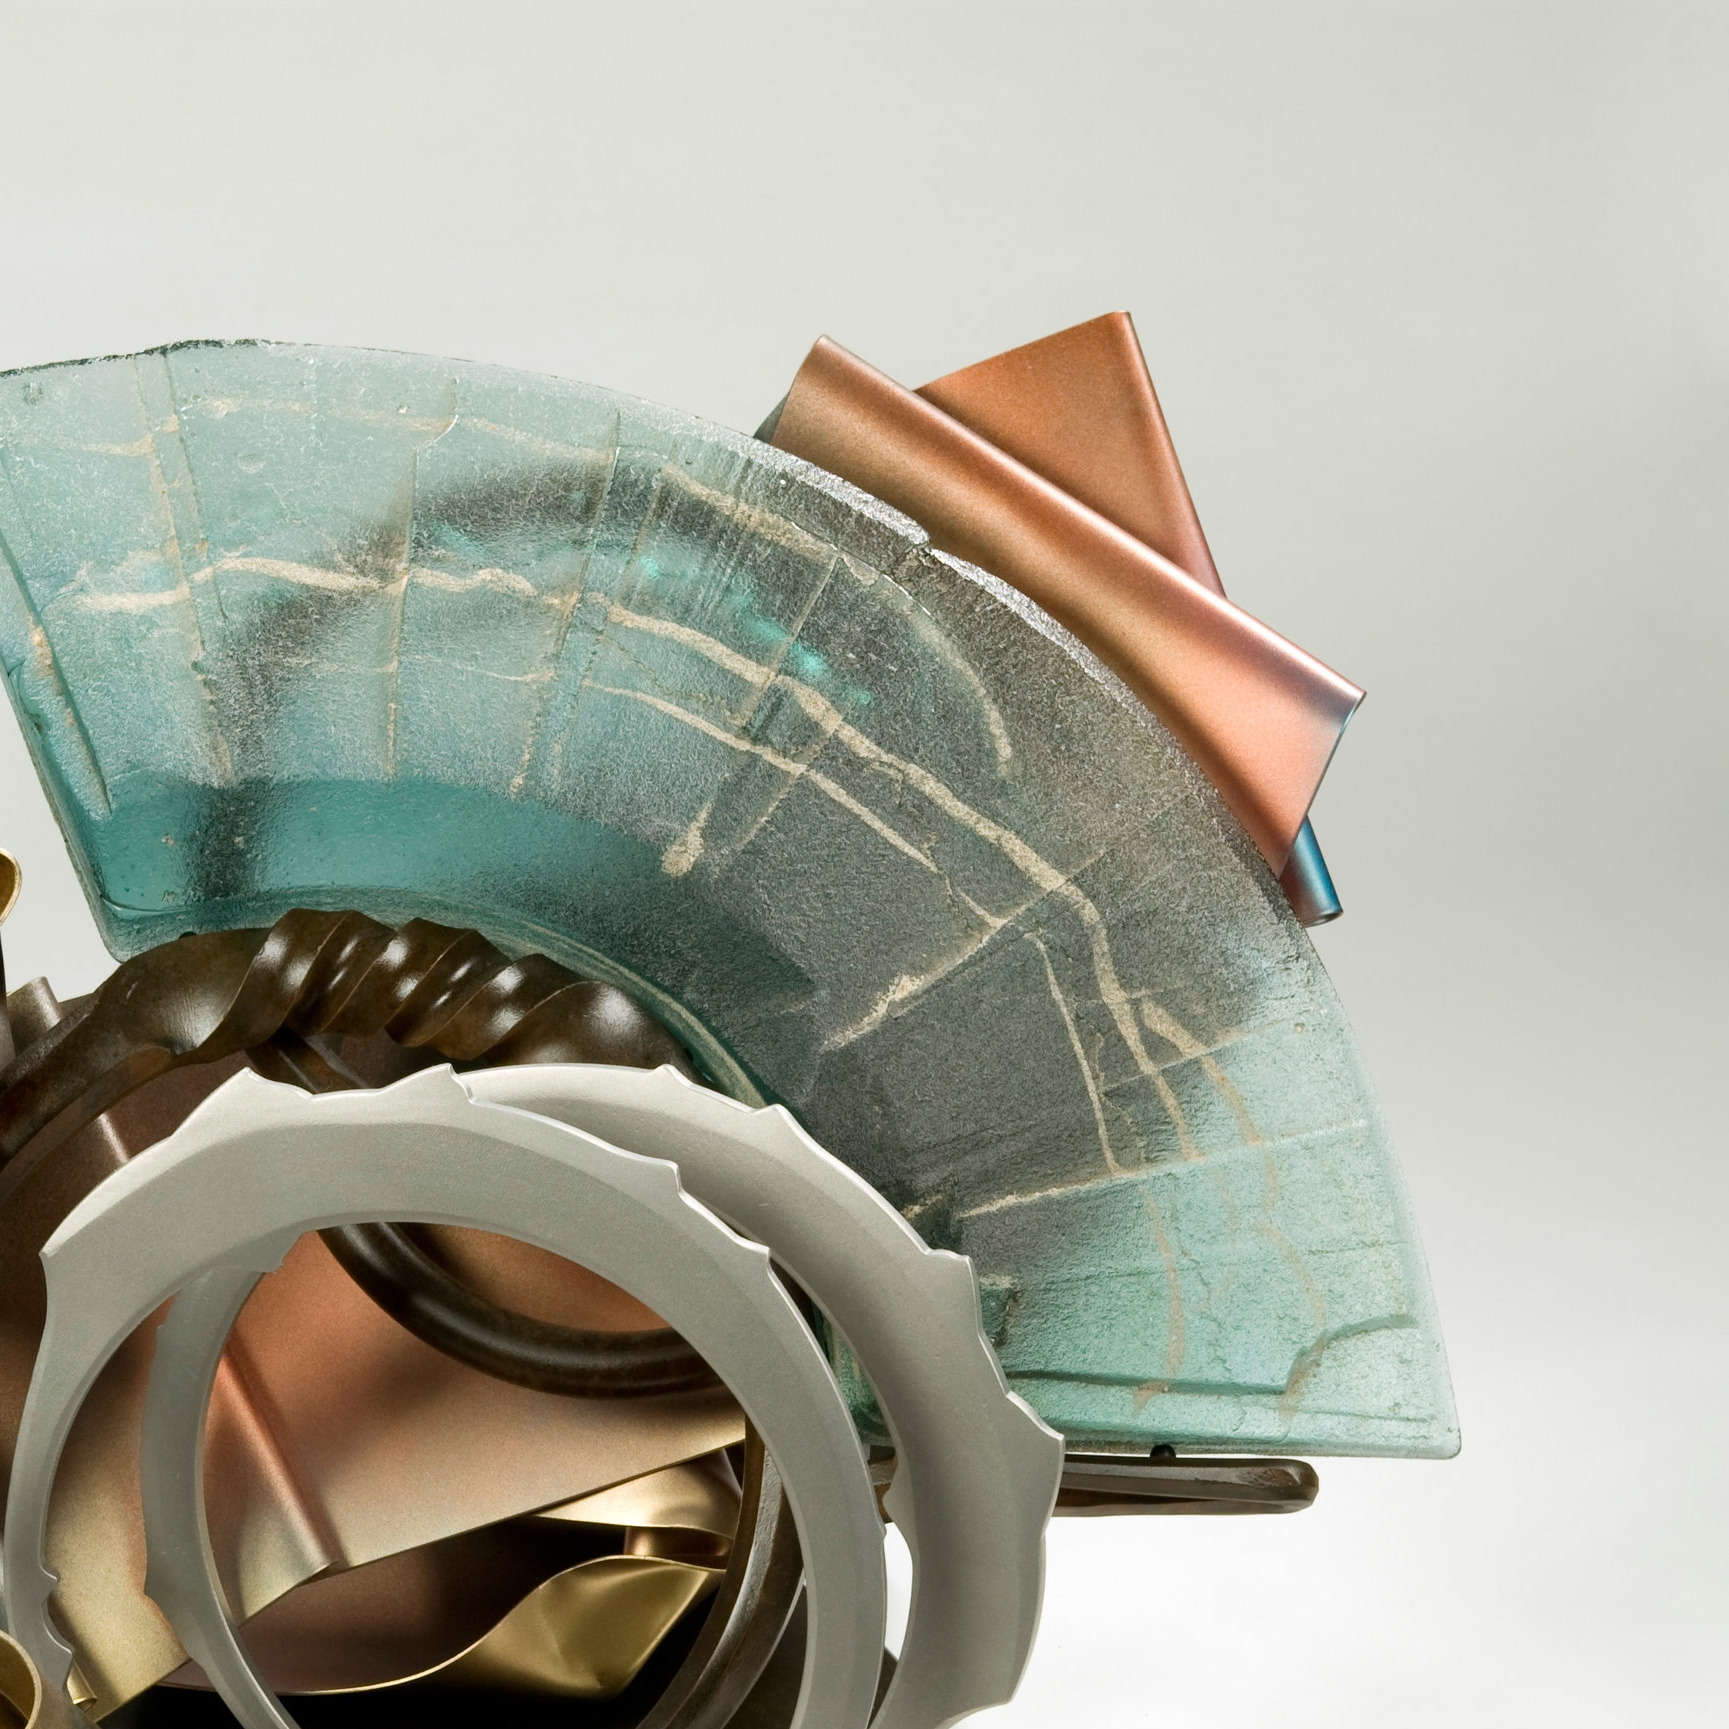 Complementary Contrasts: The Glass and Steel Sculptures of Albert Paley    September 9, 2017 - August 19, 2018